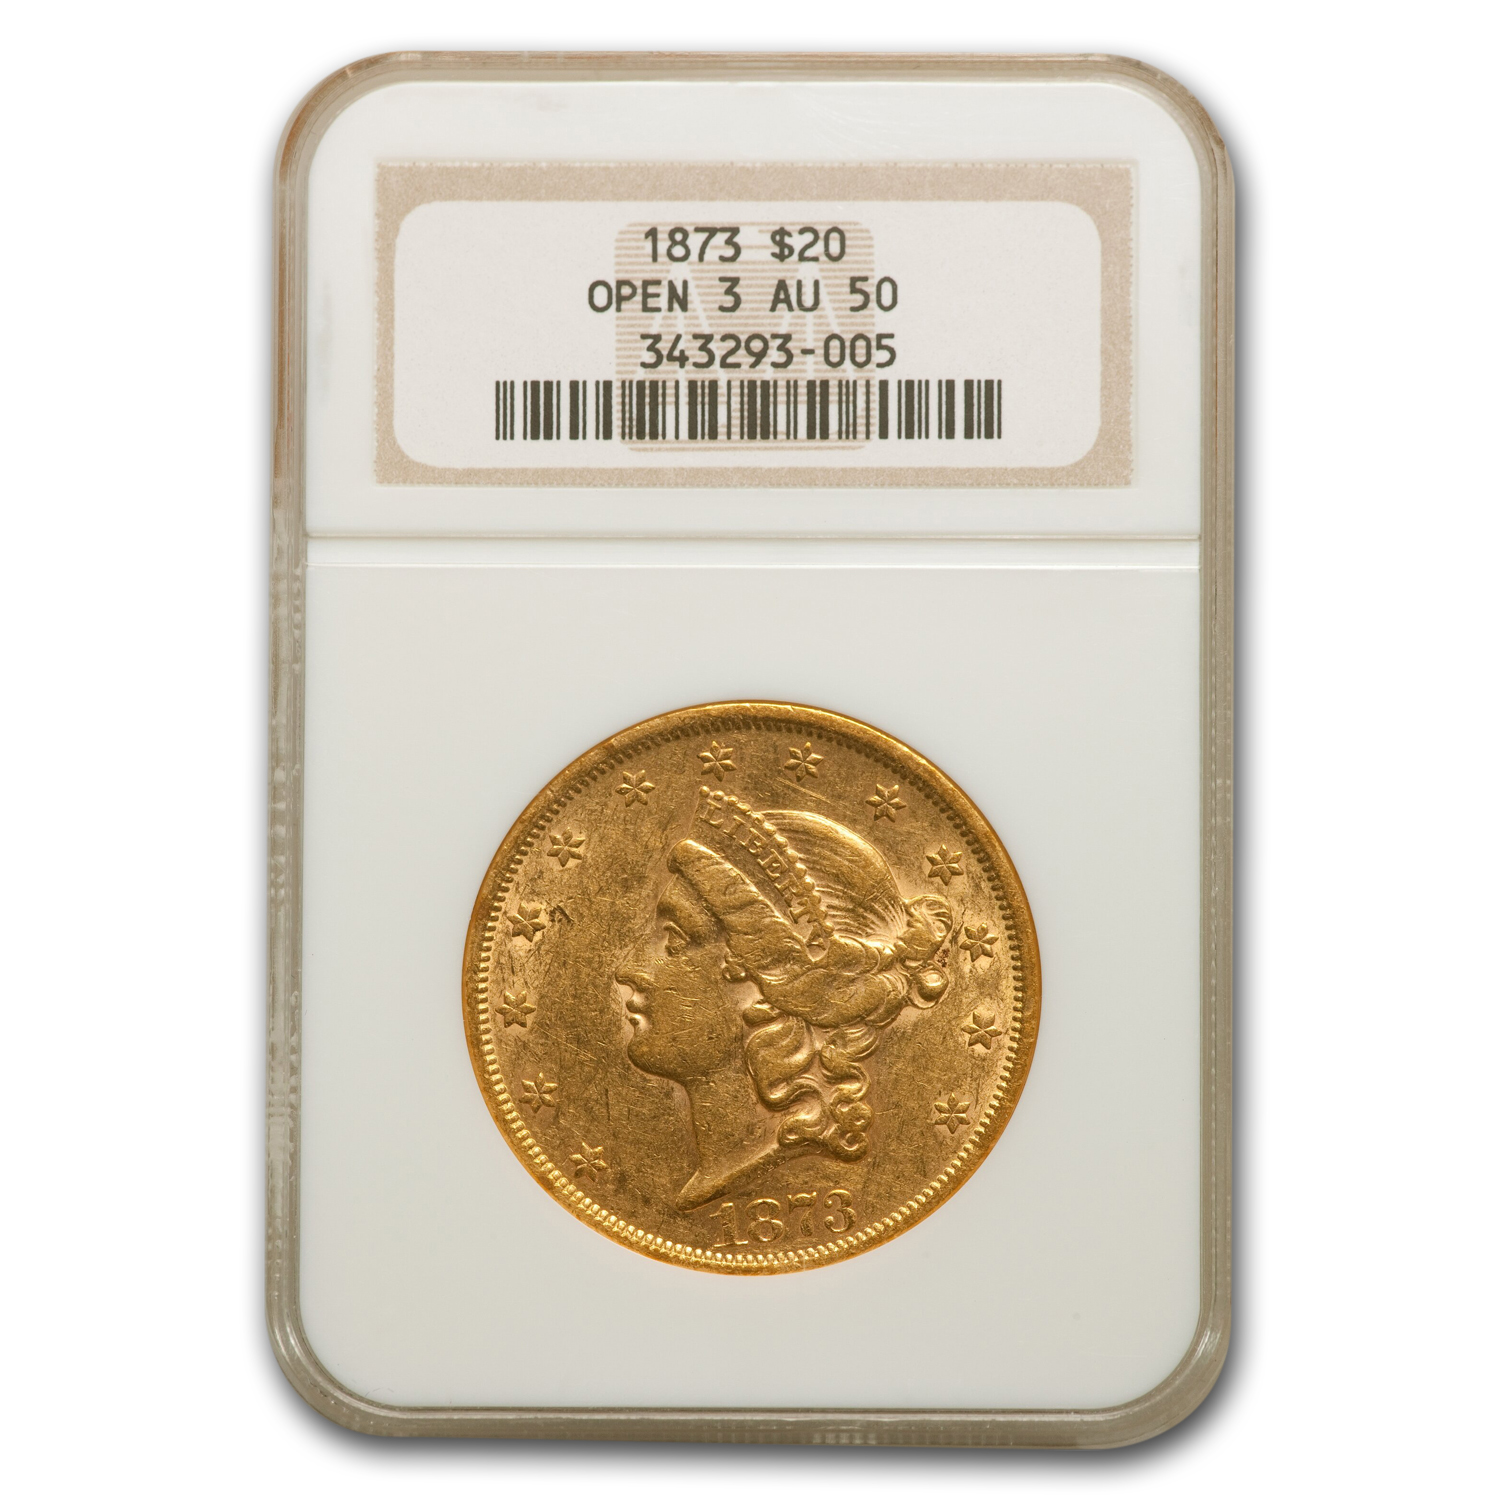 1873 $20 Gold Liberty Double Eagle - (Open 3) - AU-50 NGC